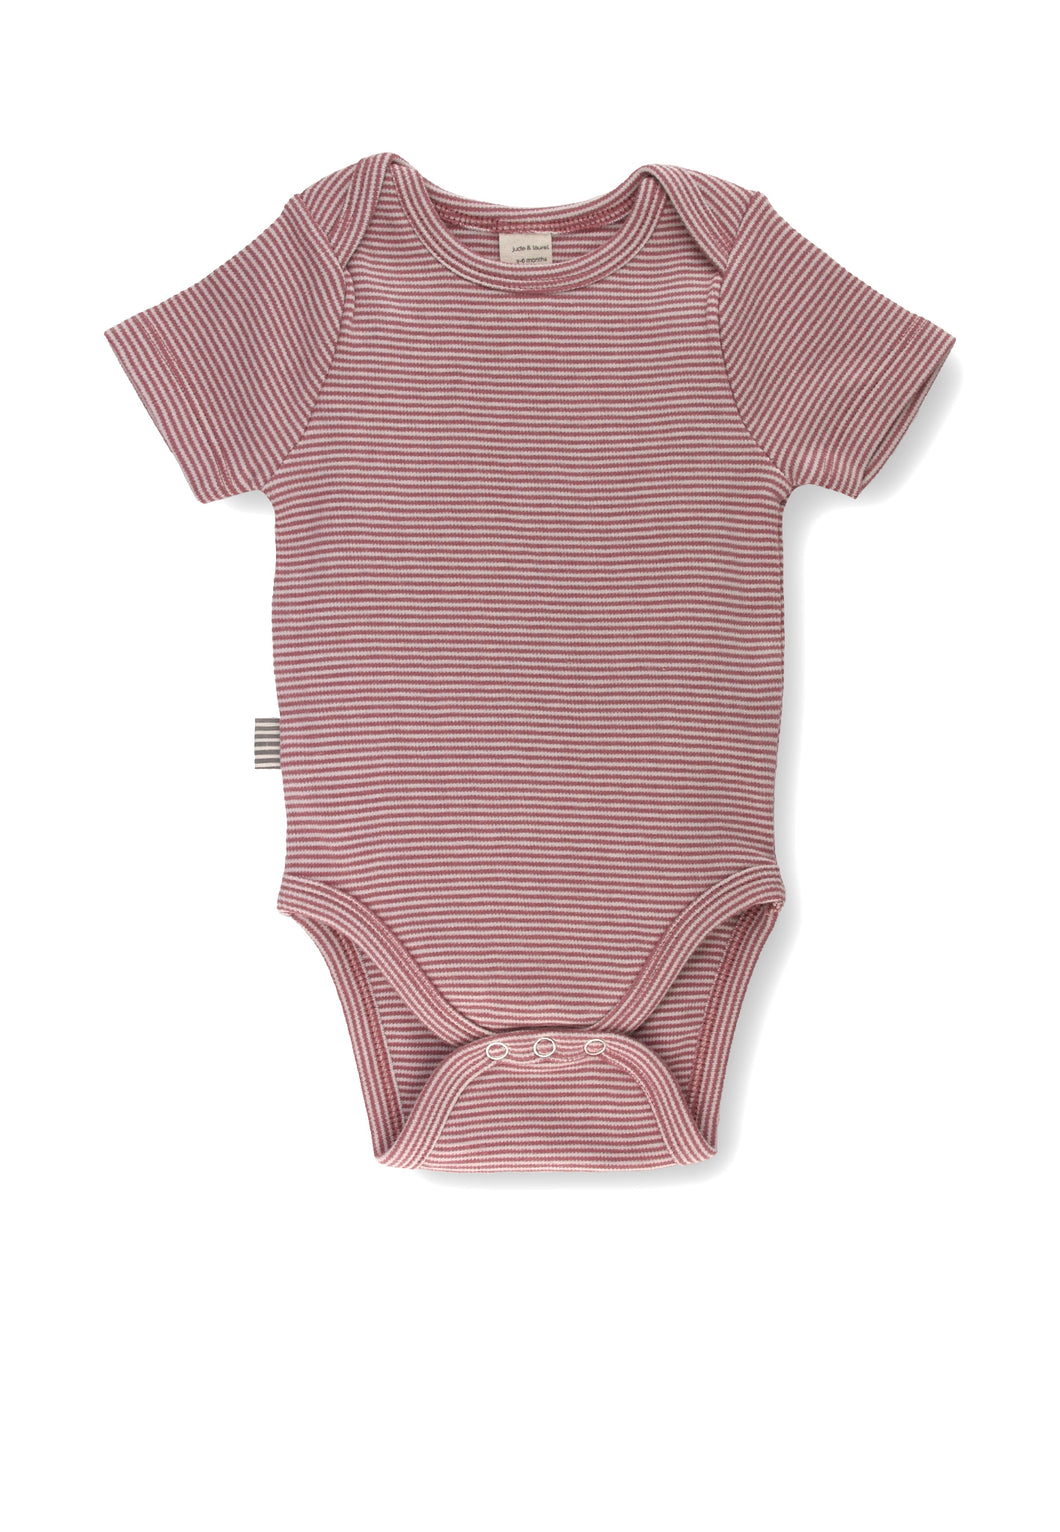 Fave Short Sleeve Onesie ~ Natural Rose Brown Stripe